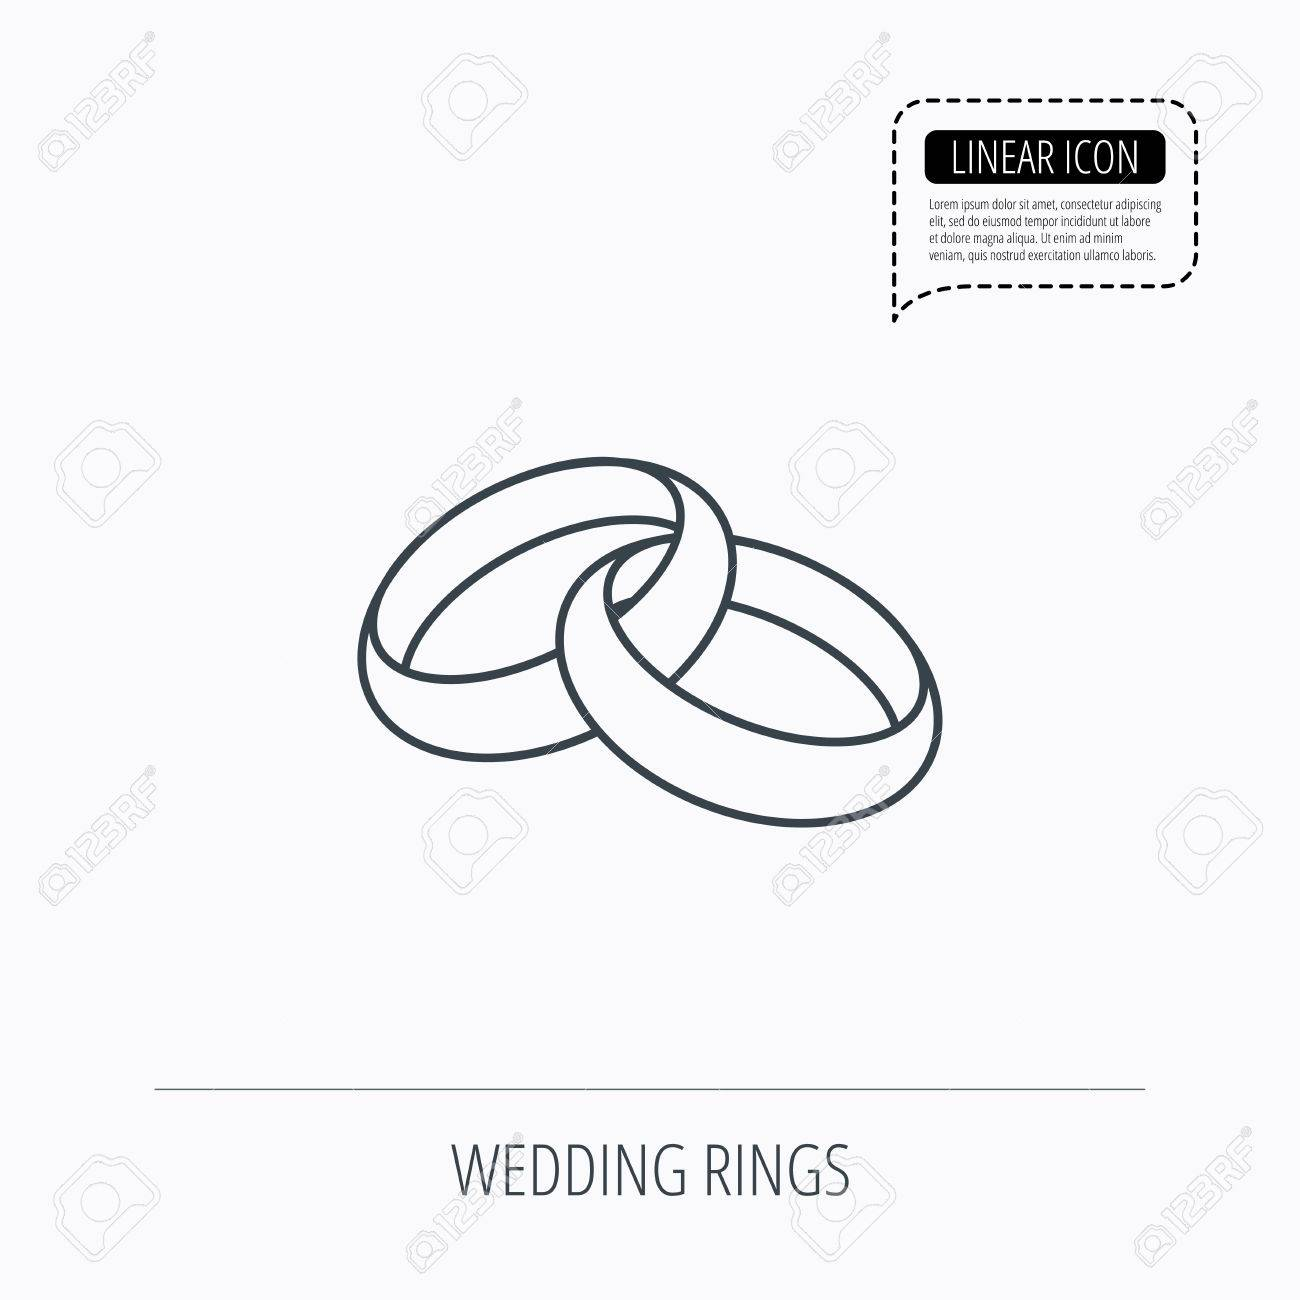 Wedding Rings Icon Bride And Groom Jewelery Sign Linear Outline